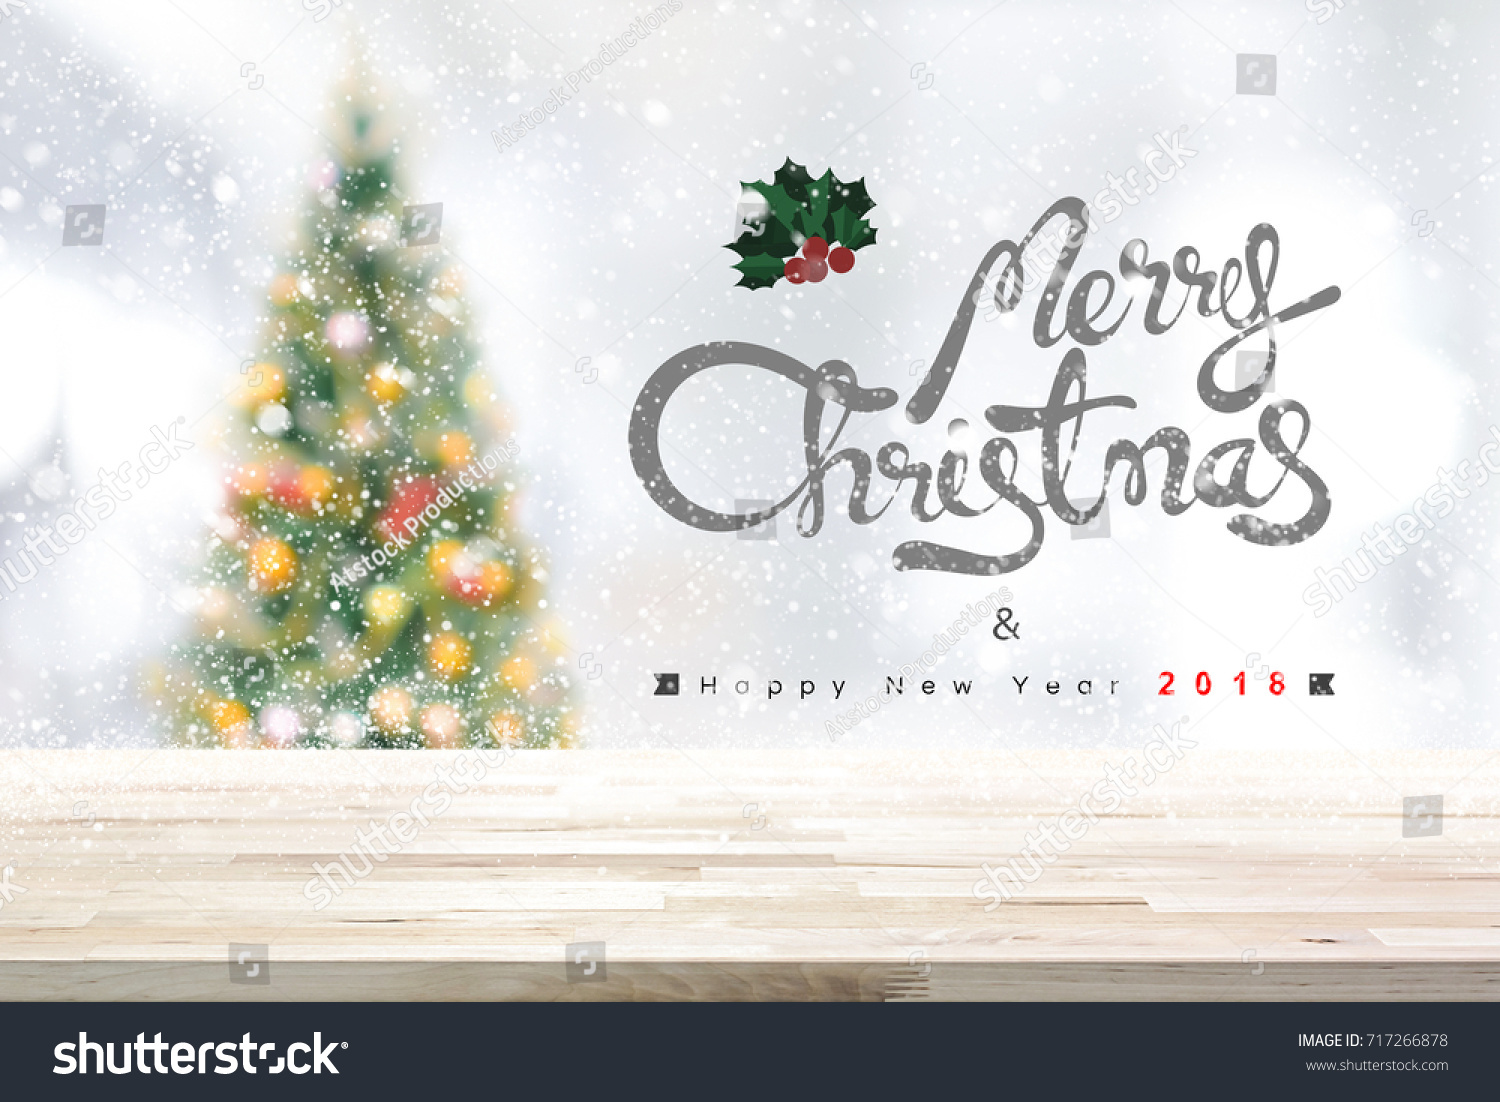 merry christmas and happy new year 2018 background with wood table top blurred decorated pine